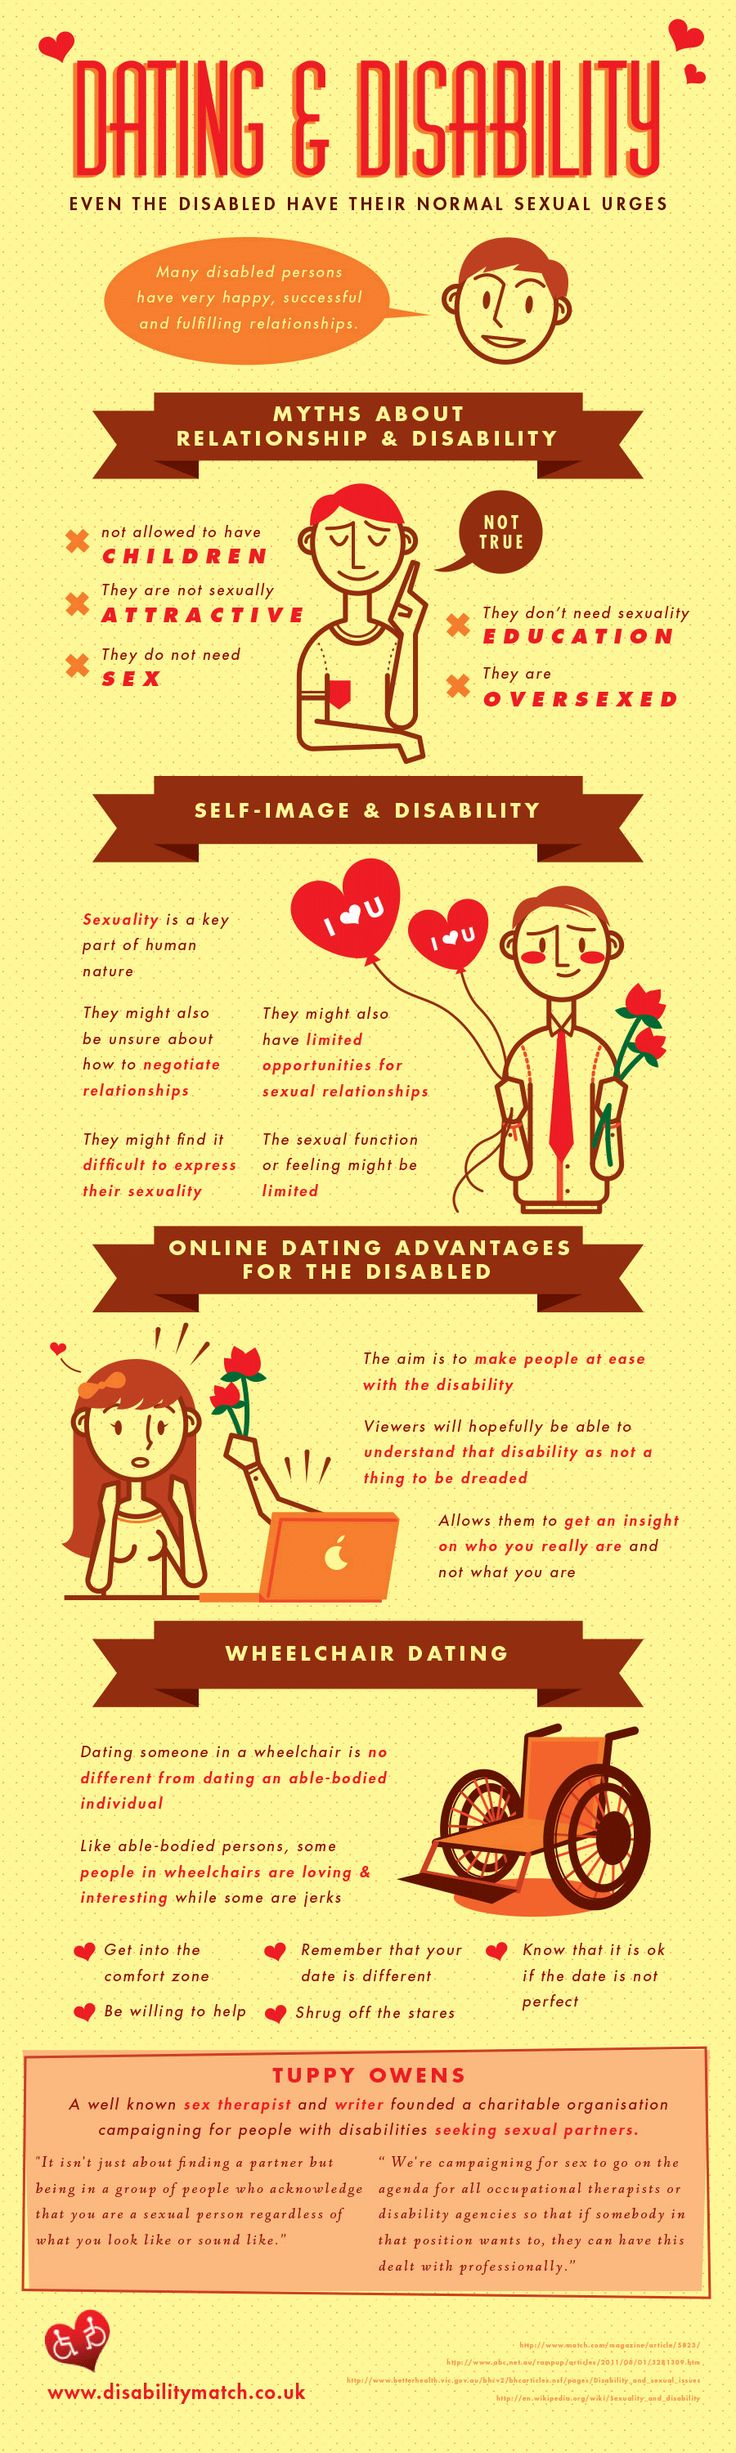 This is an infographic on dating and disability. It is important to realize the fact that even the disabled have their normal sexual urges.